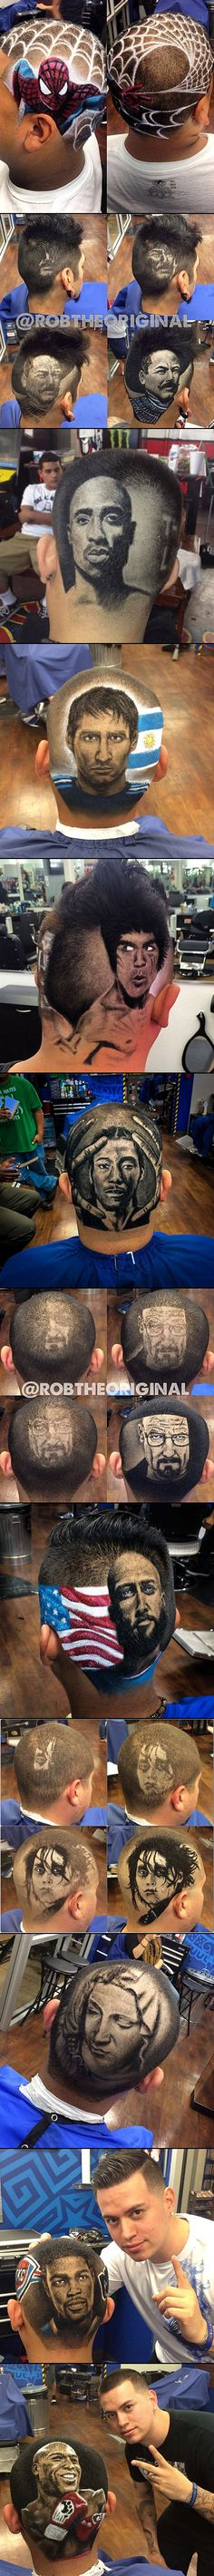 Master barber Rob 'The Original' Ferrel is a hair artist from Los Angeles, California and currently based in San Antonio, Texas where he owns and operates his own barbershop.